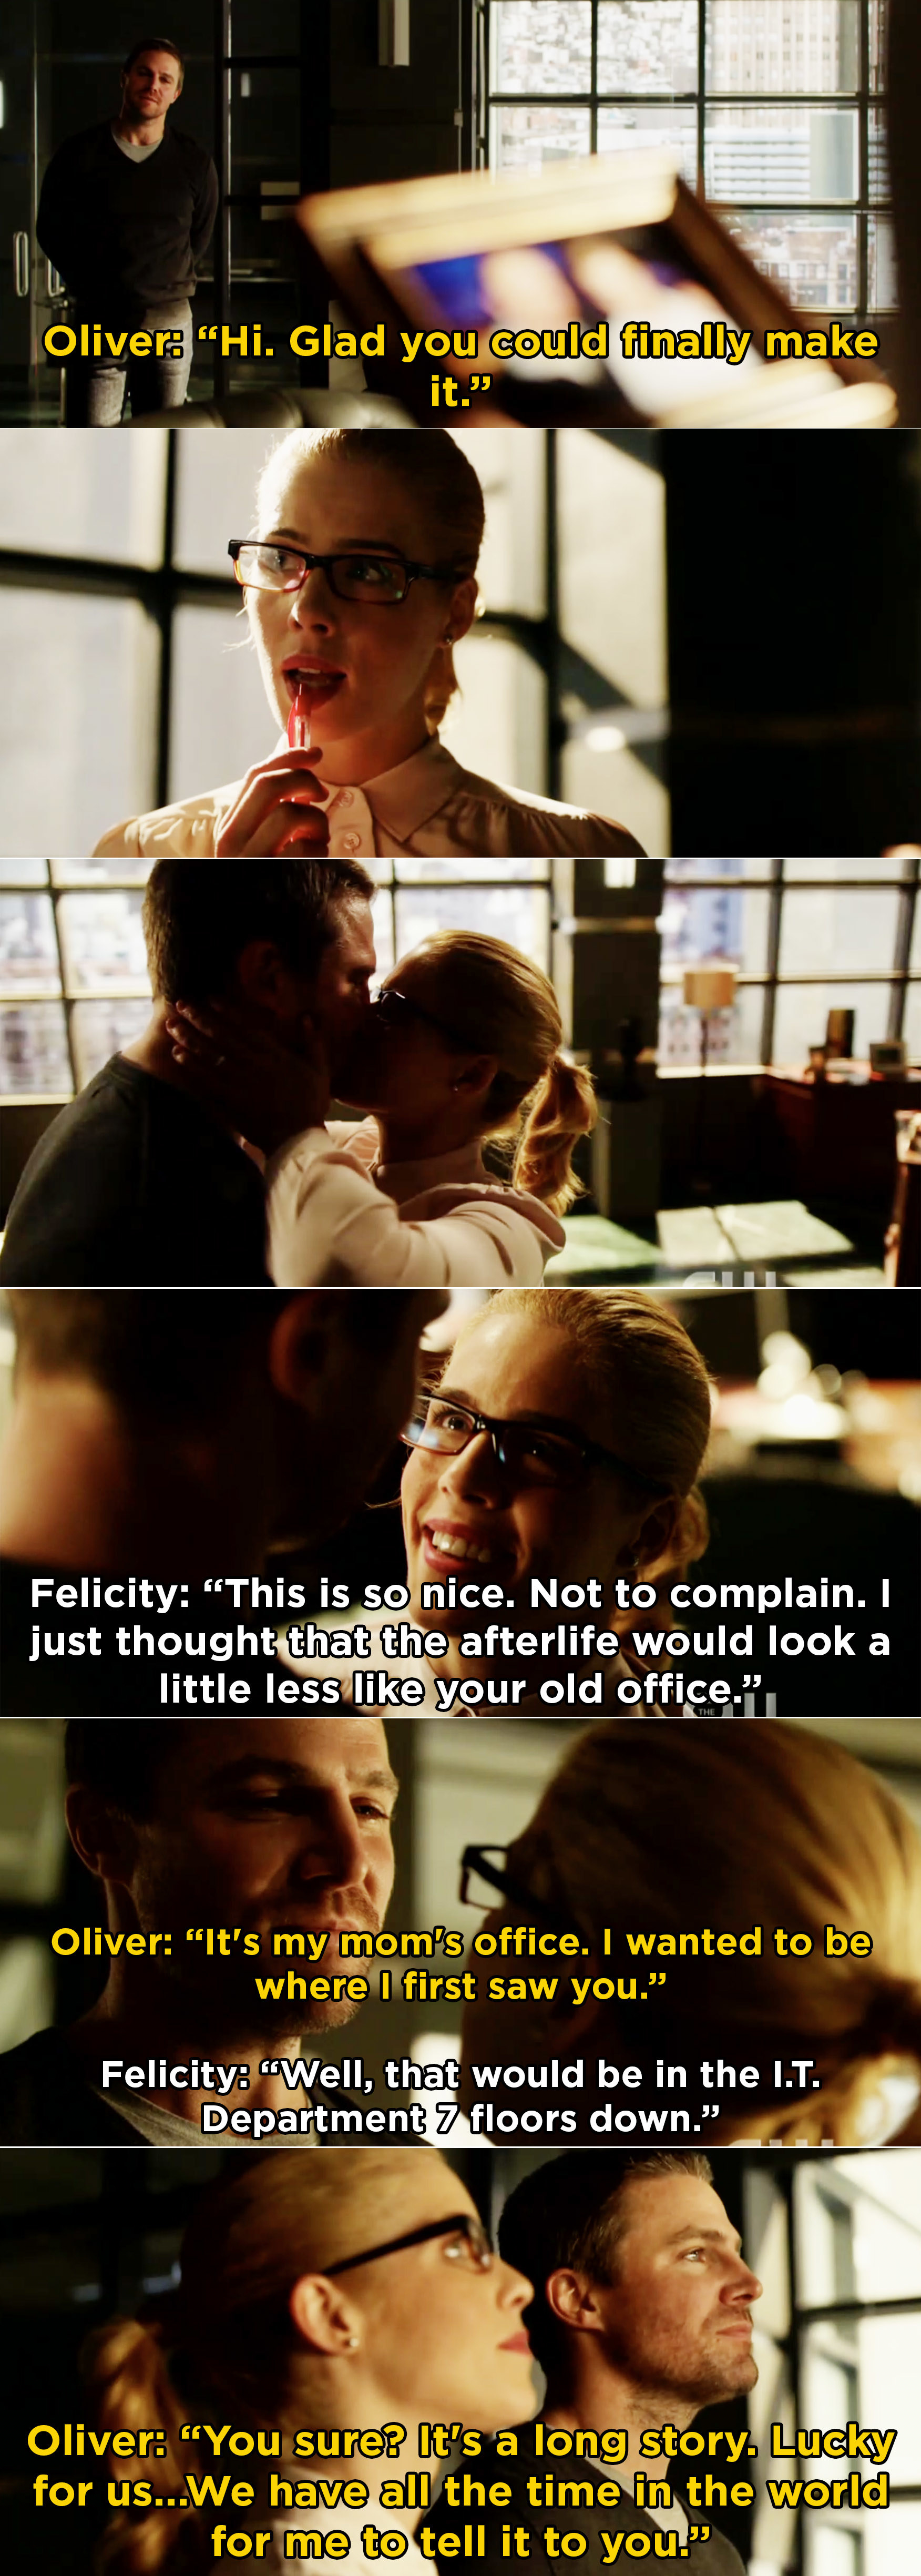 """Oliver and Felicity kissing, then Oliver saying he can't wait to tell Felicity everything because they have """"all the time in the world"""""""